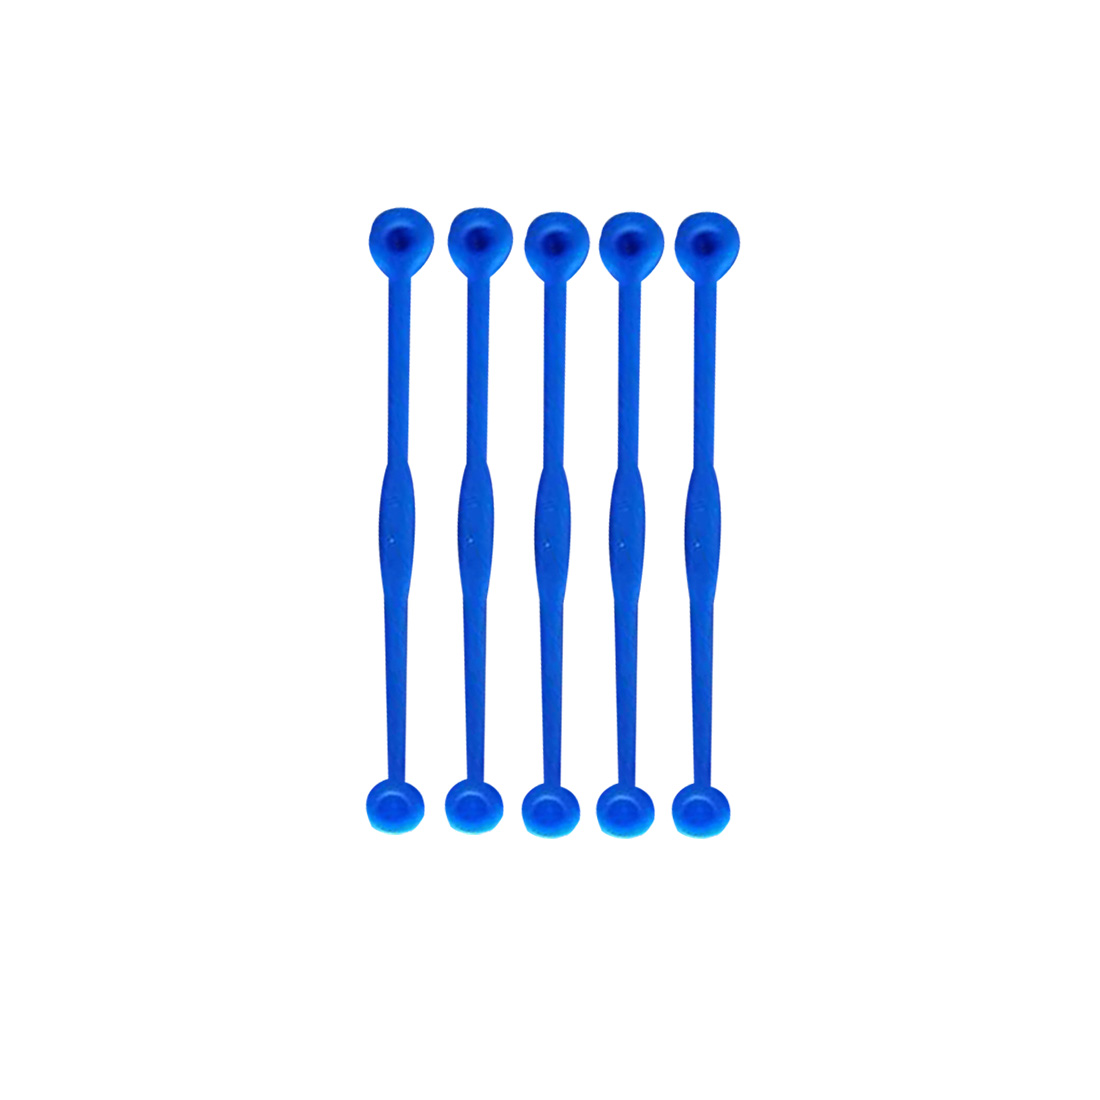 5pcs Outdoor Games Toys Long Hook Reduce Vibration Shock Absorber String Tennis Racket Damper Squash Sports Silicone Accessories